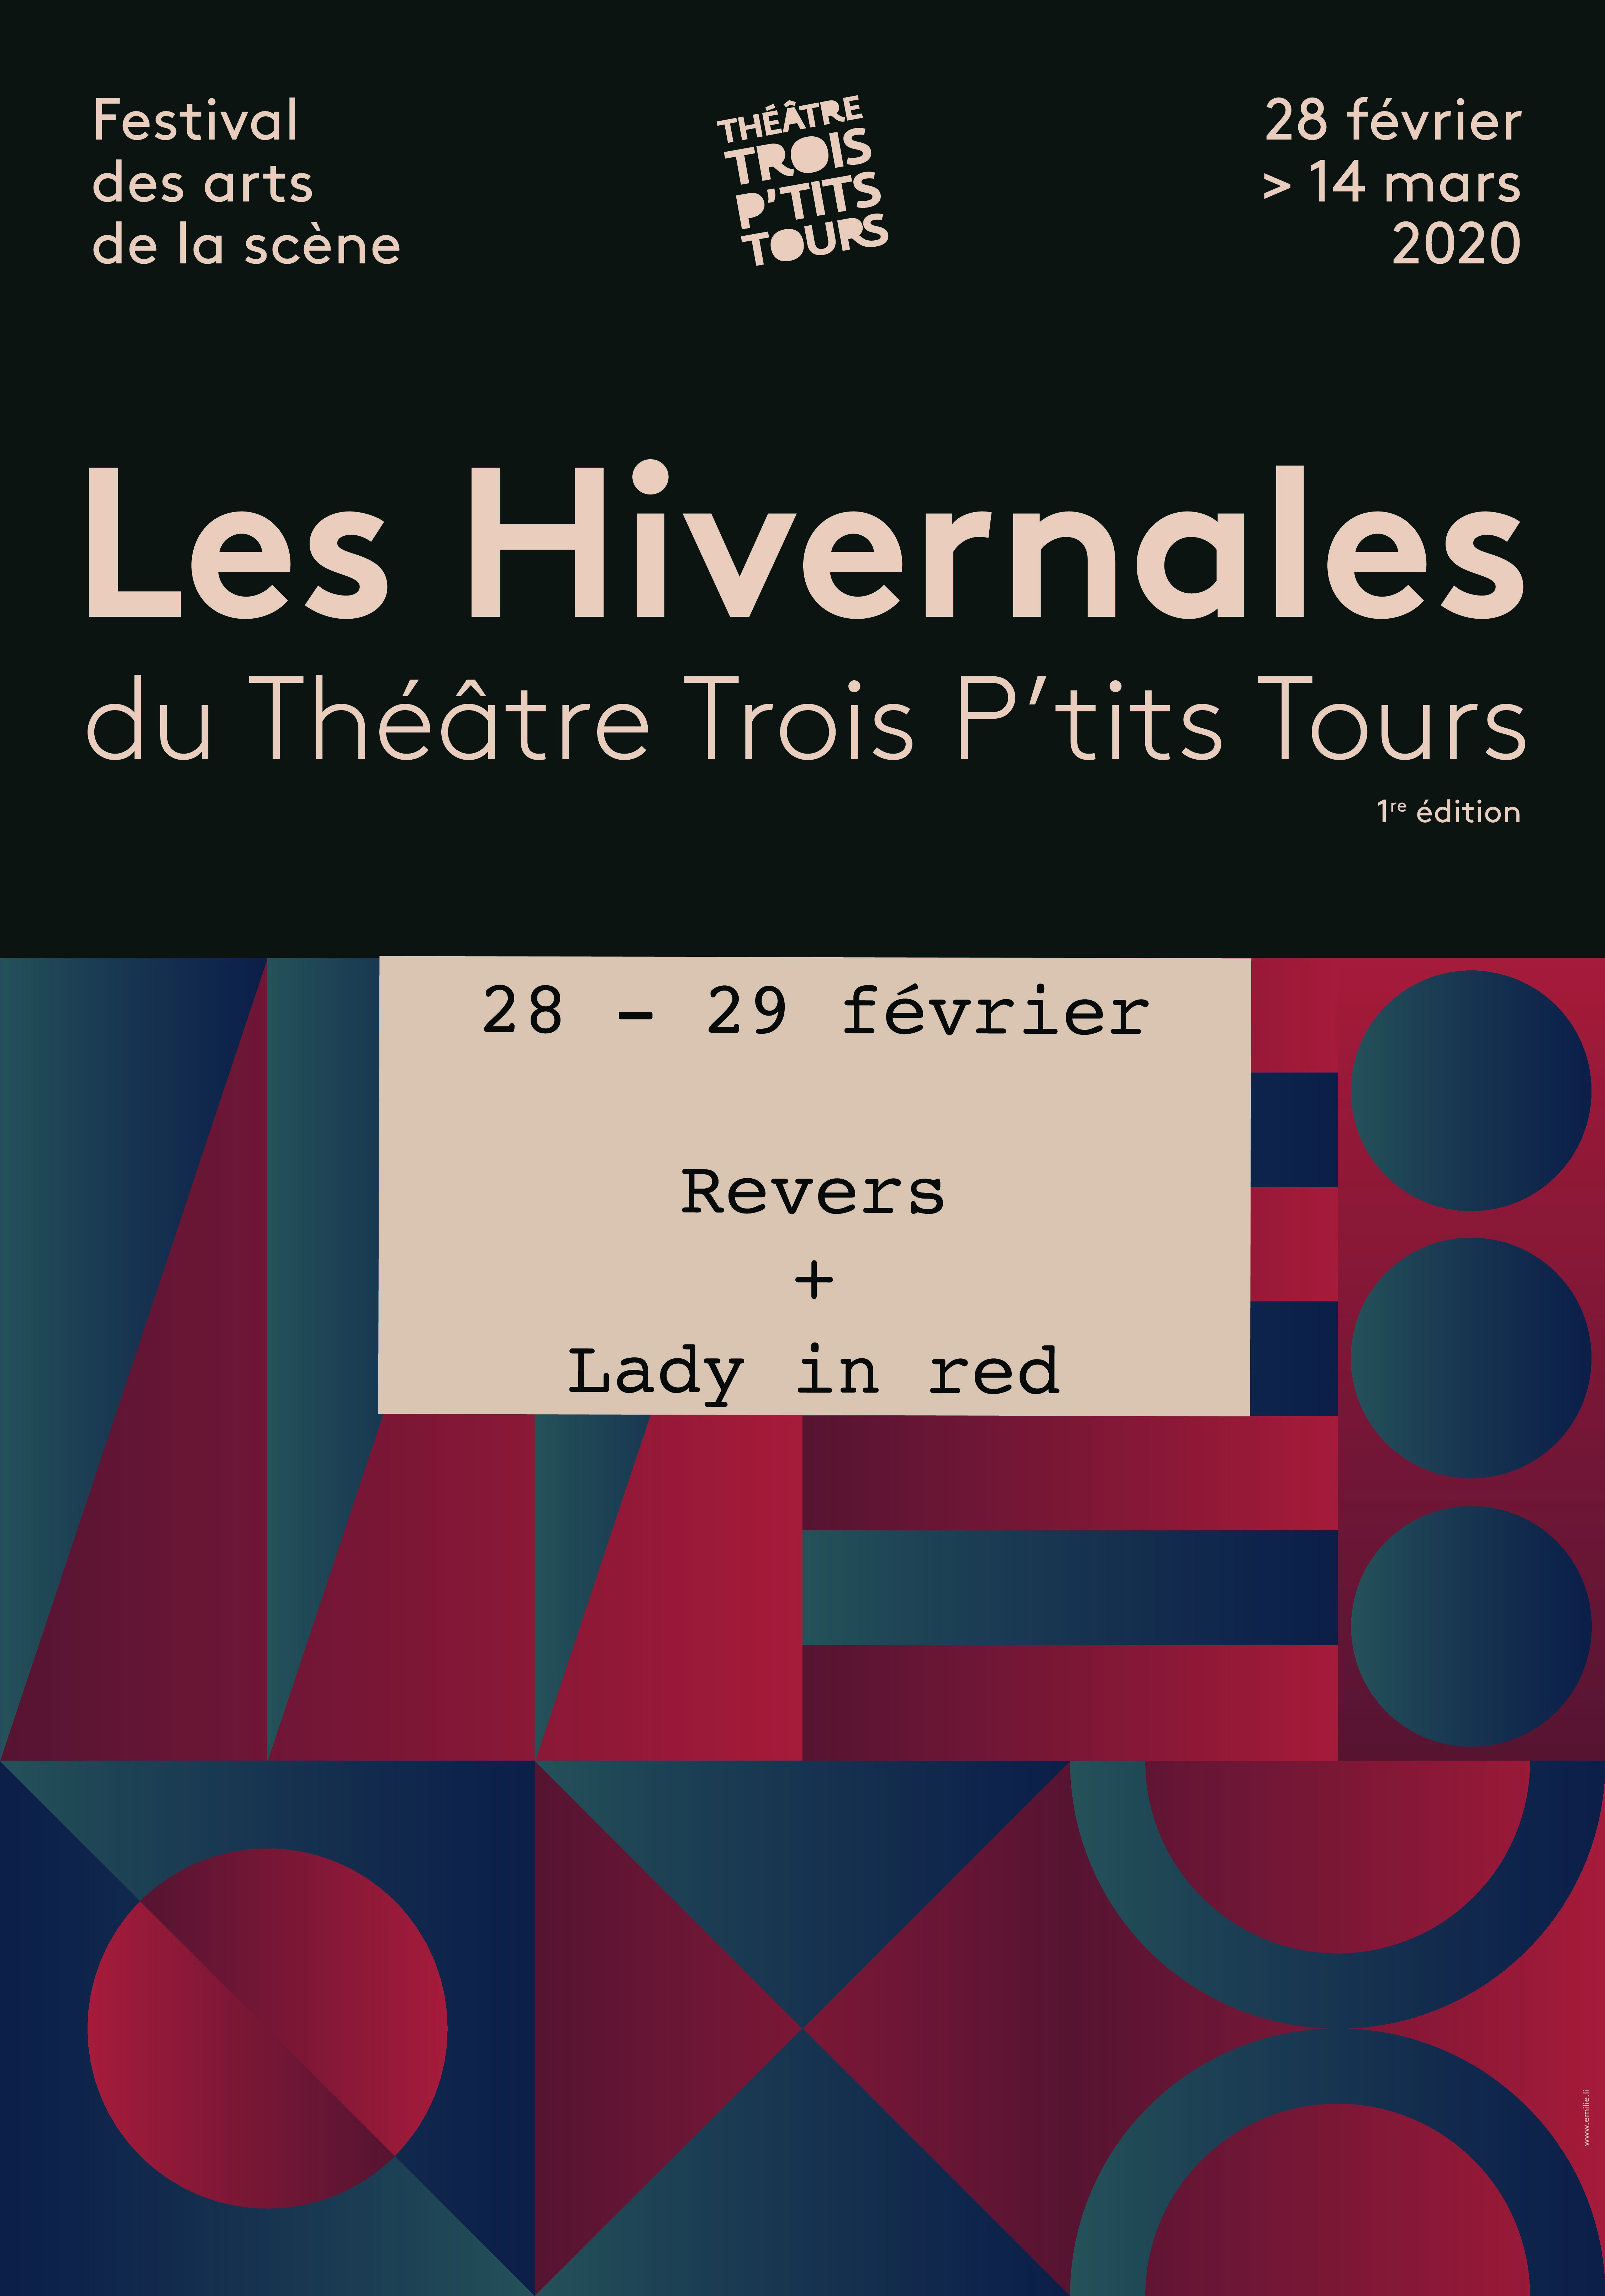 Les Hivernales: Revers + Lady in red